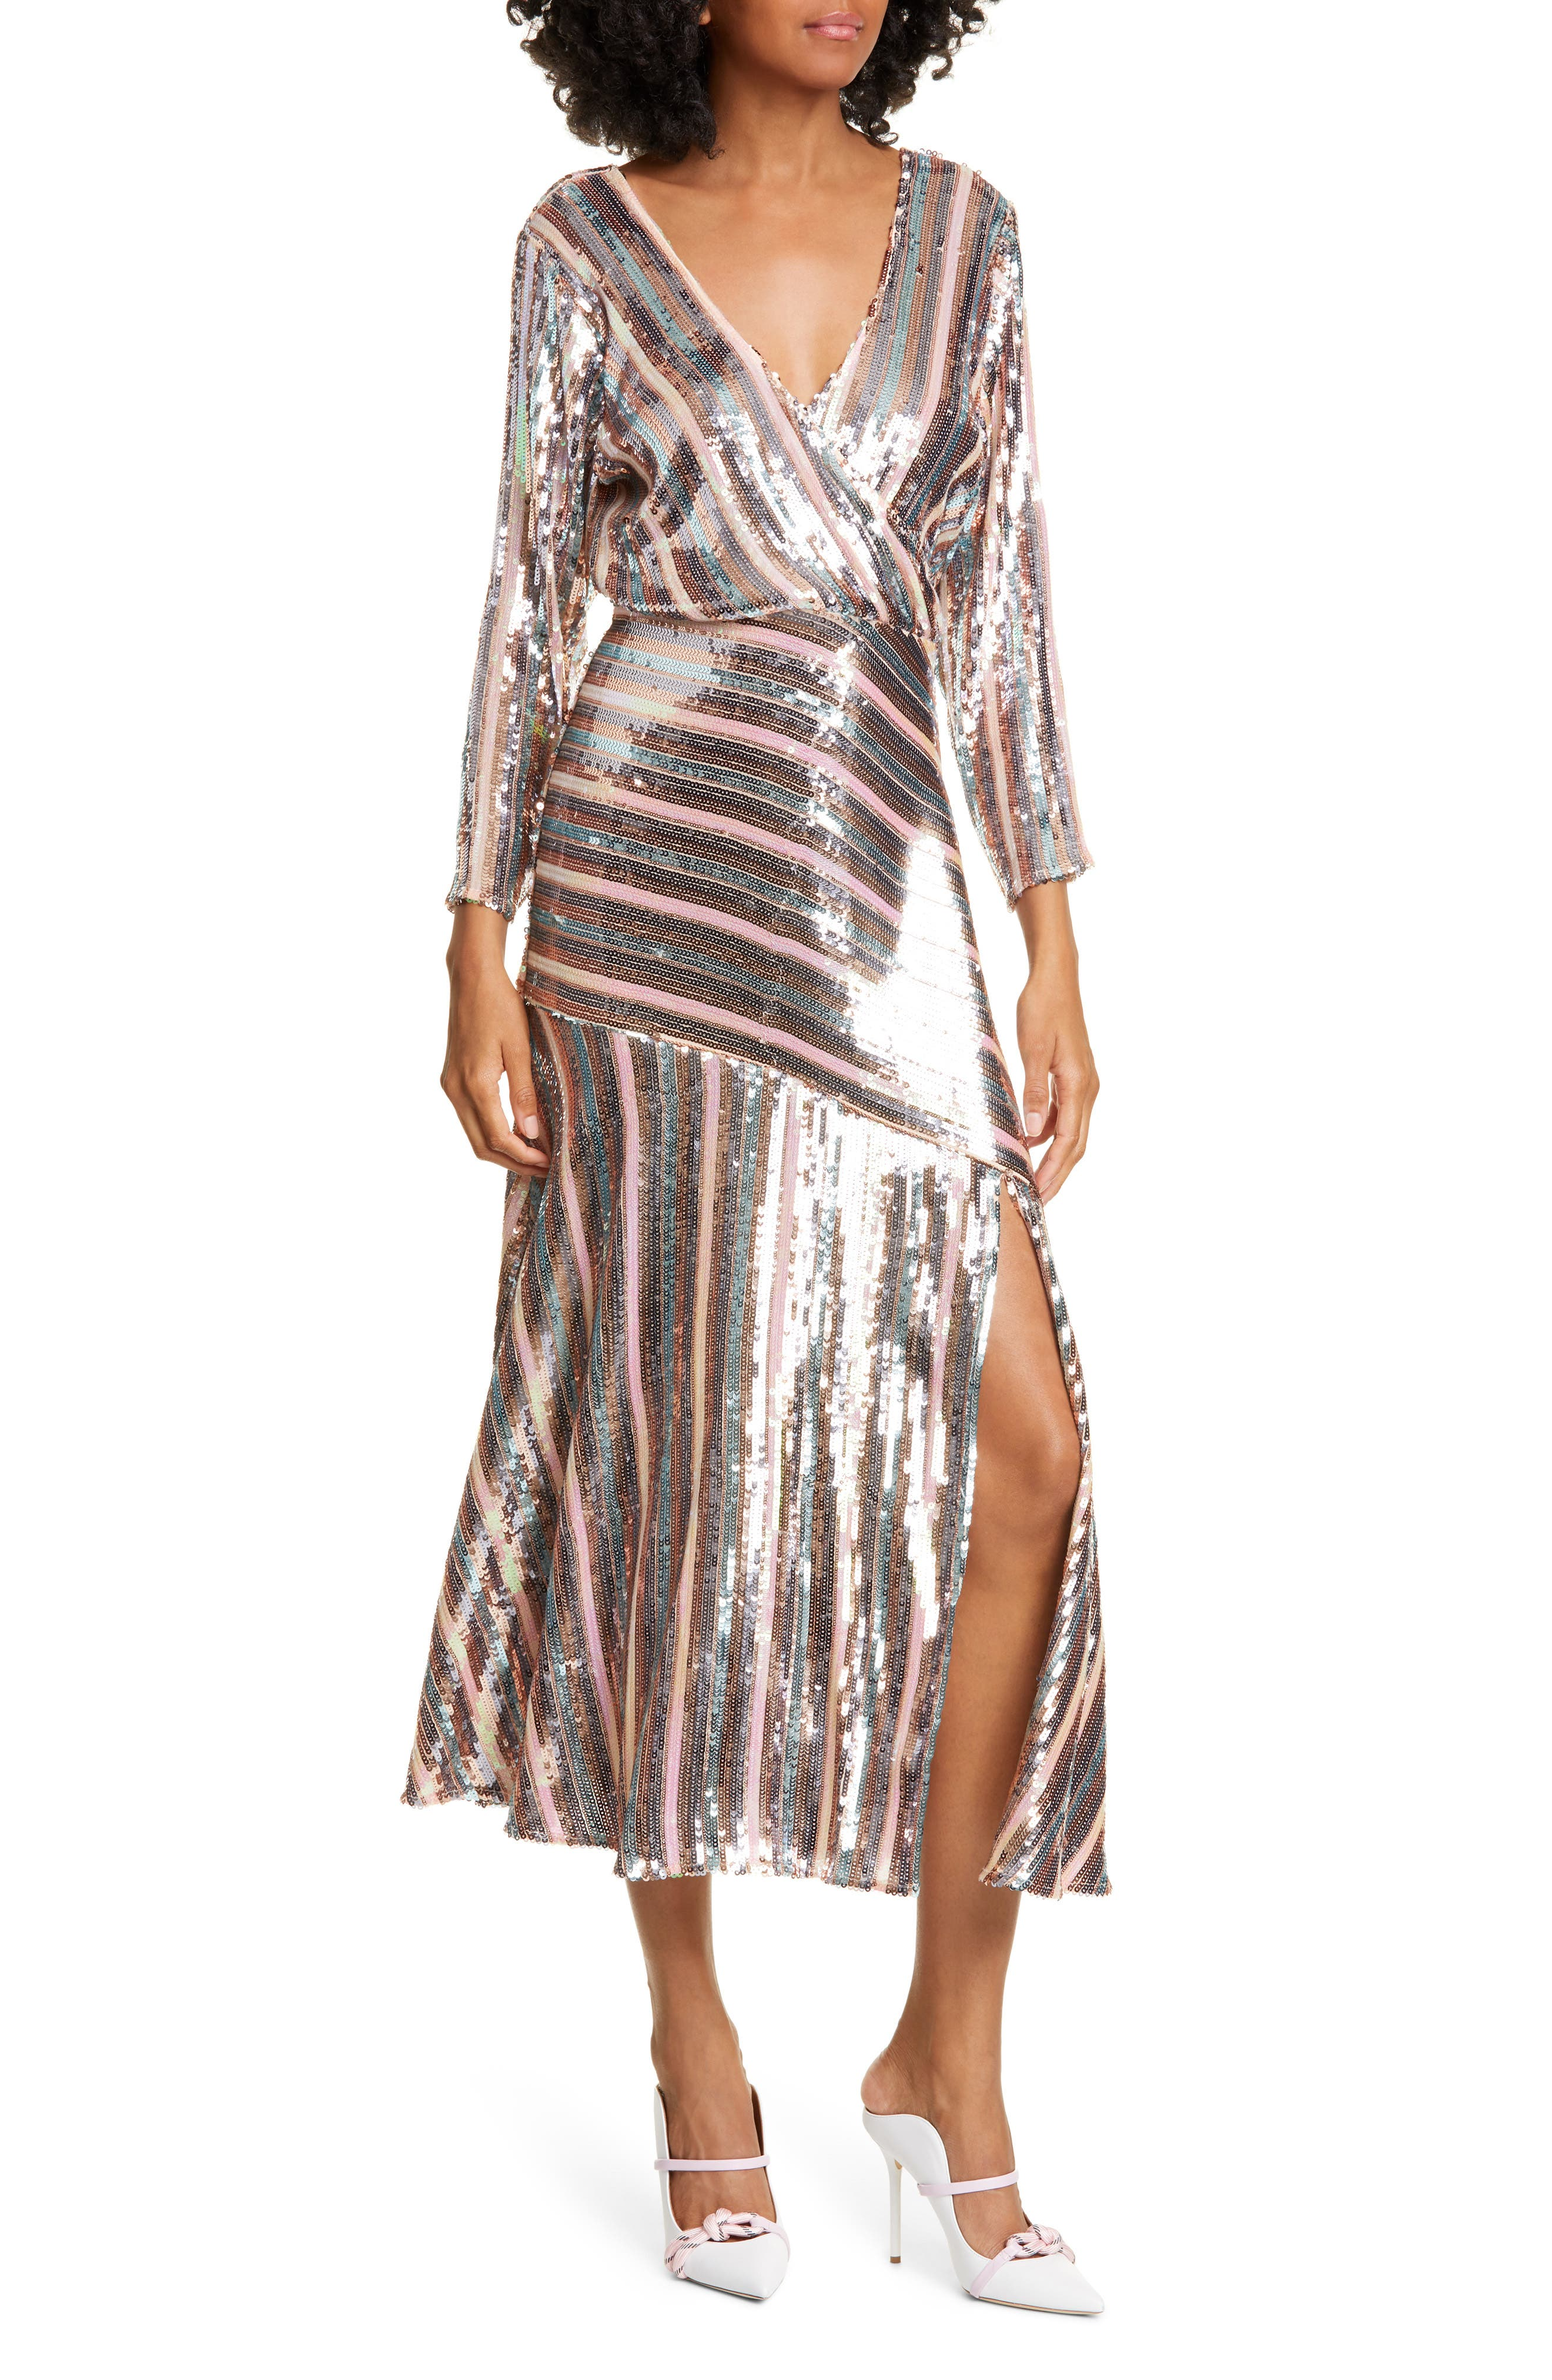 70s Prom, Formal, Evening, Party Dresses Womens Rixo Tyra Sequin Stripe Dress $335.98 AT vintagedancer.com